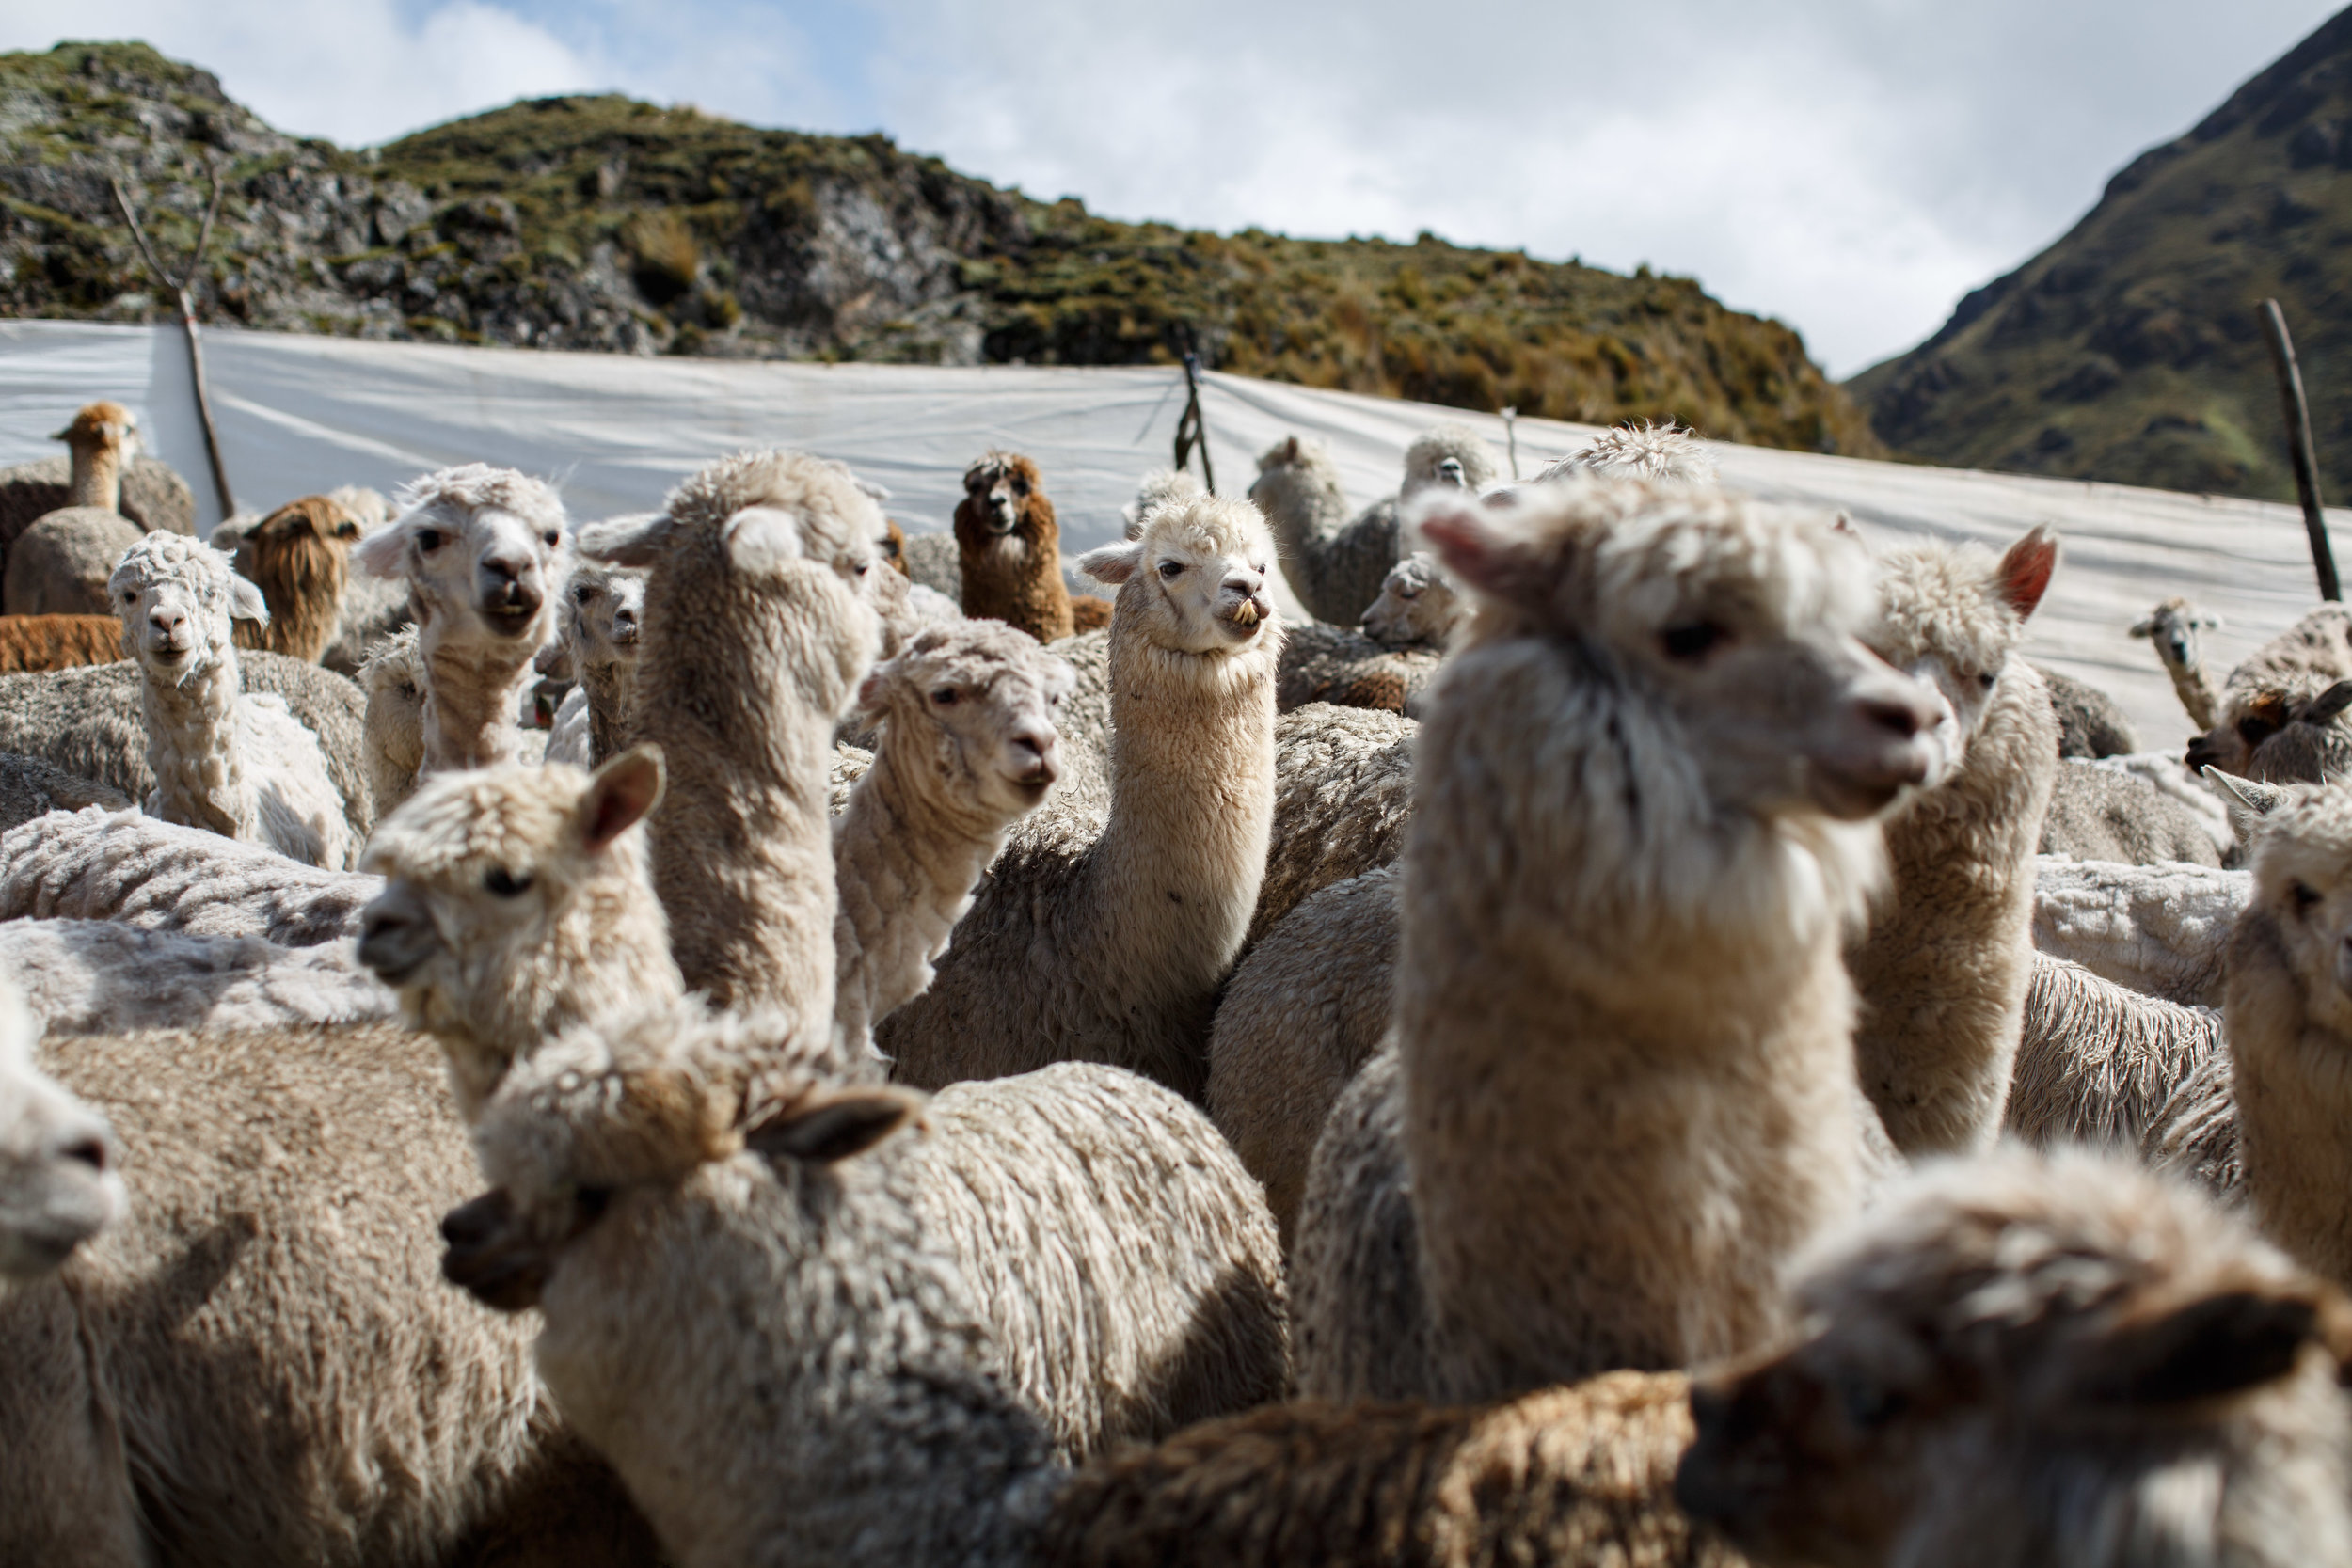 Alpacas after being roped into a small enclosure so that they can be more easily caught for shearing.